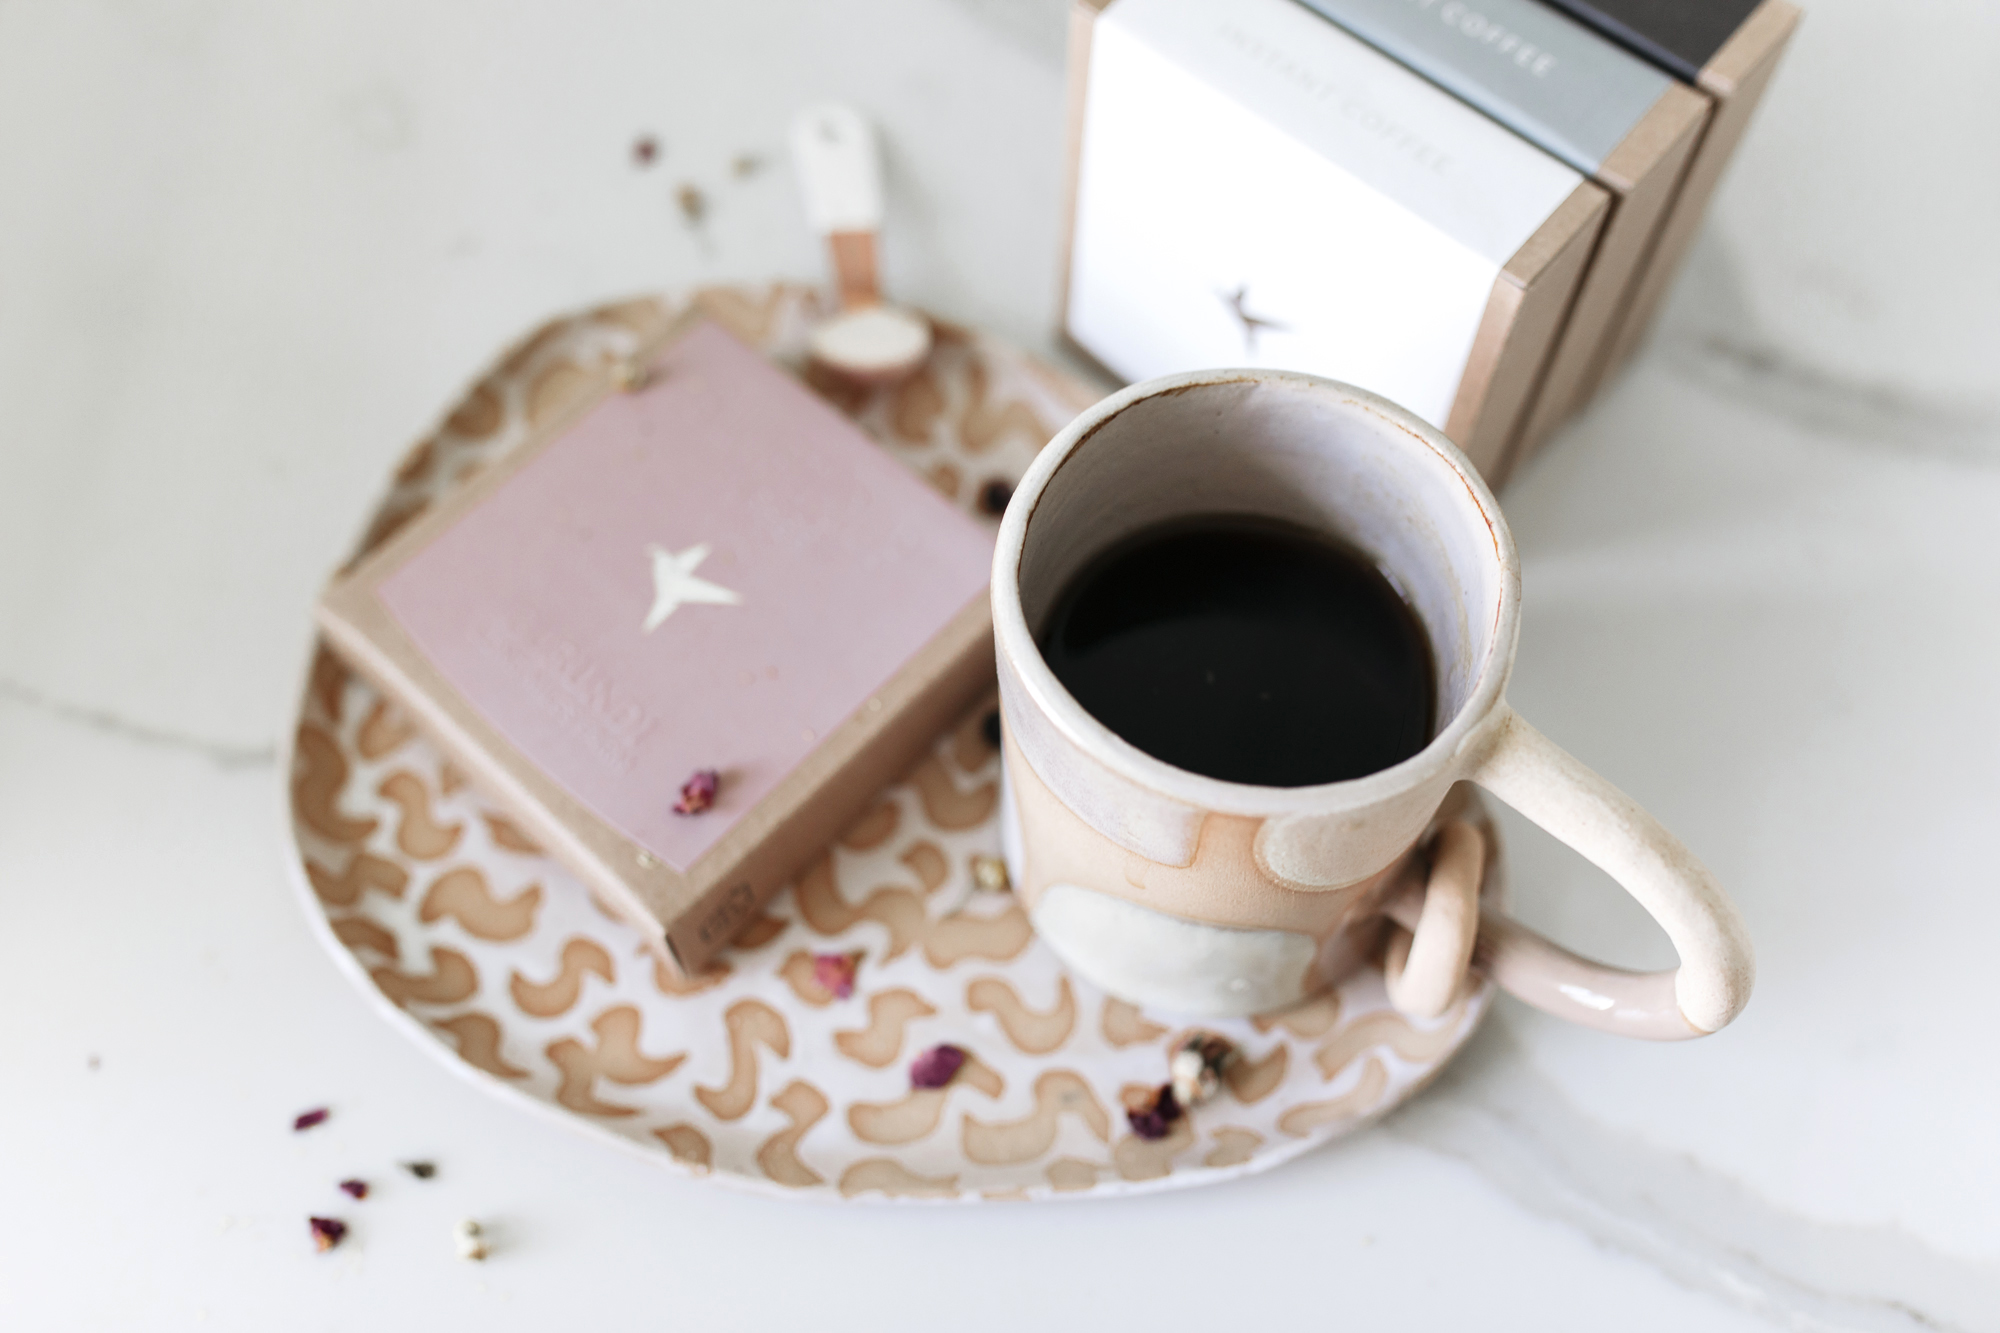 My morning routine often begins with a cup of coffee. These are two of my favorite recipes that kickstart my day and get the creativity flowing